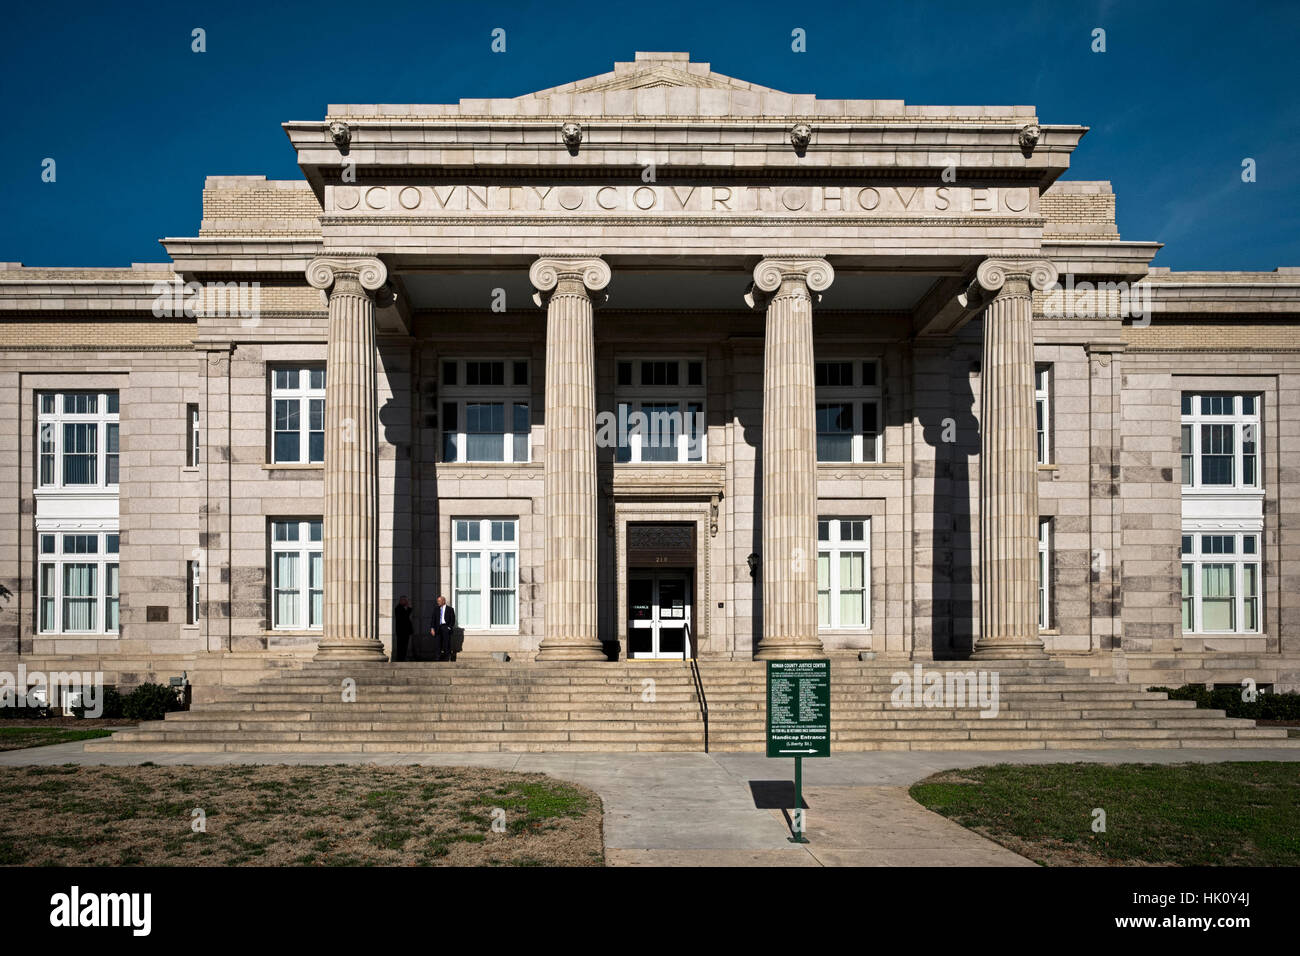 Rowan County Courthouse. Salisbury, NC  district 19c - Stock Image